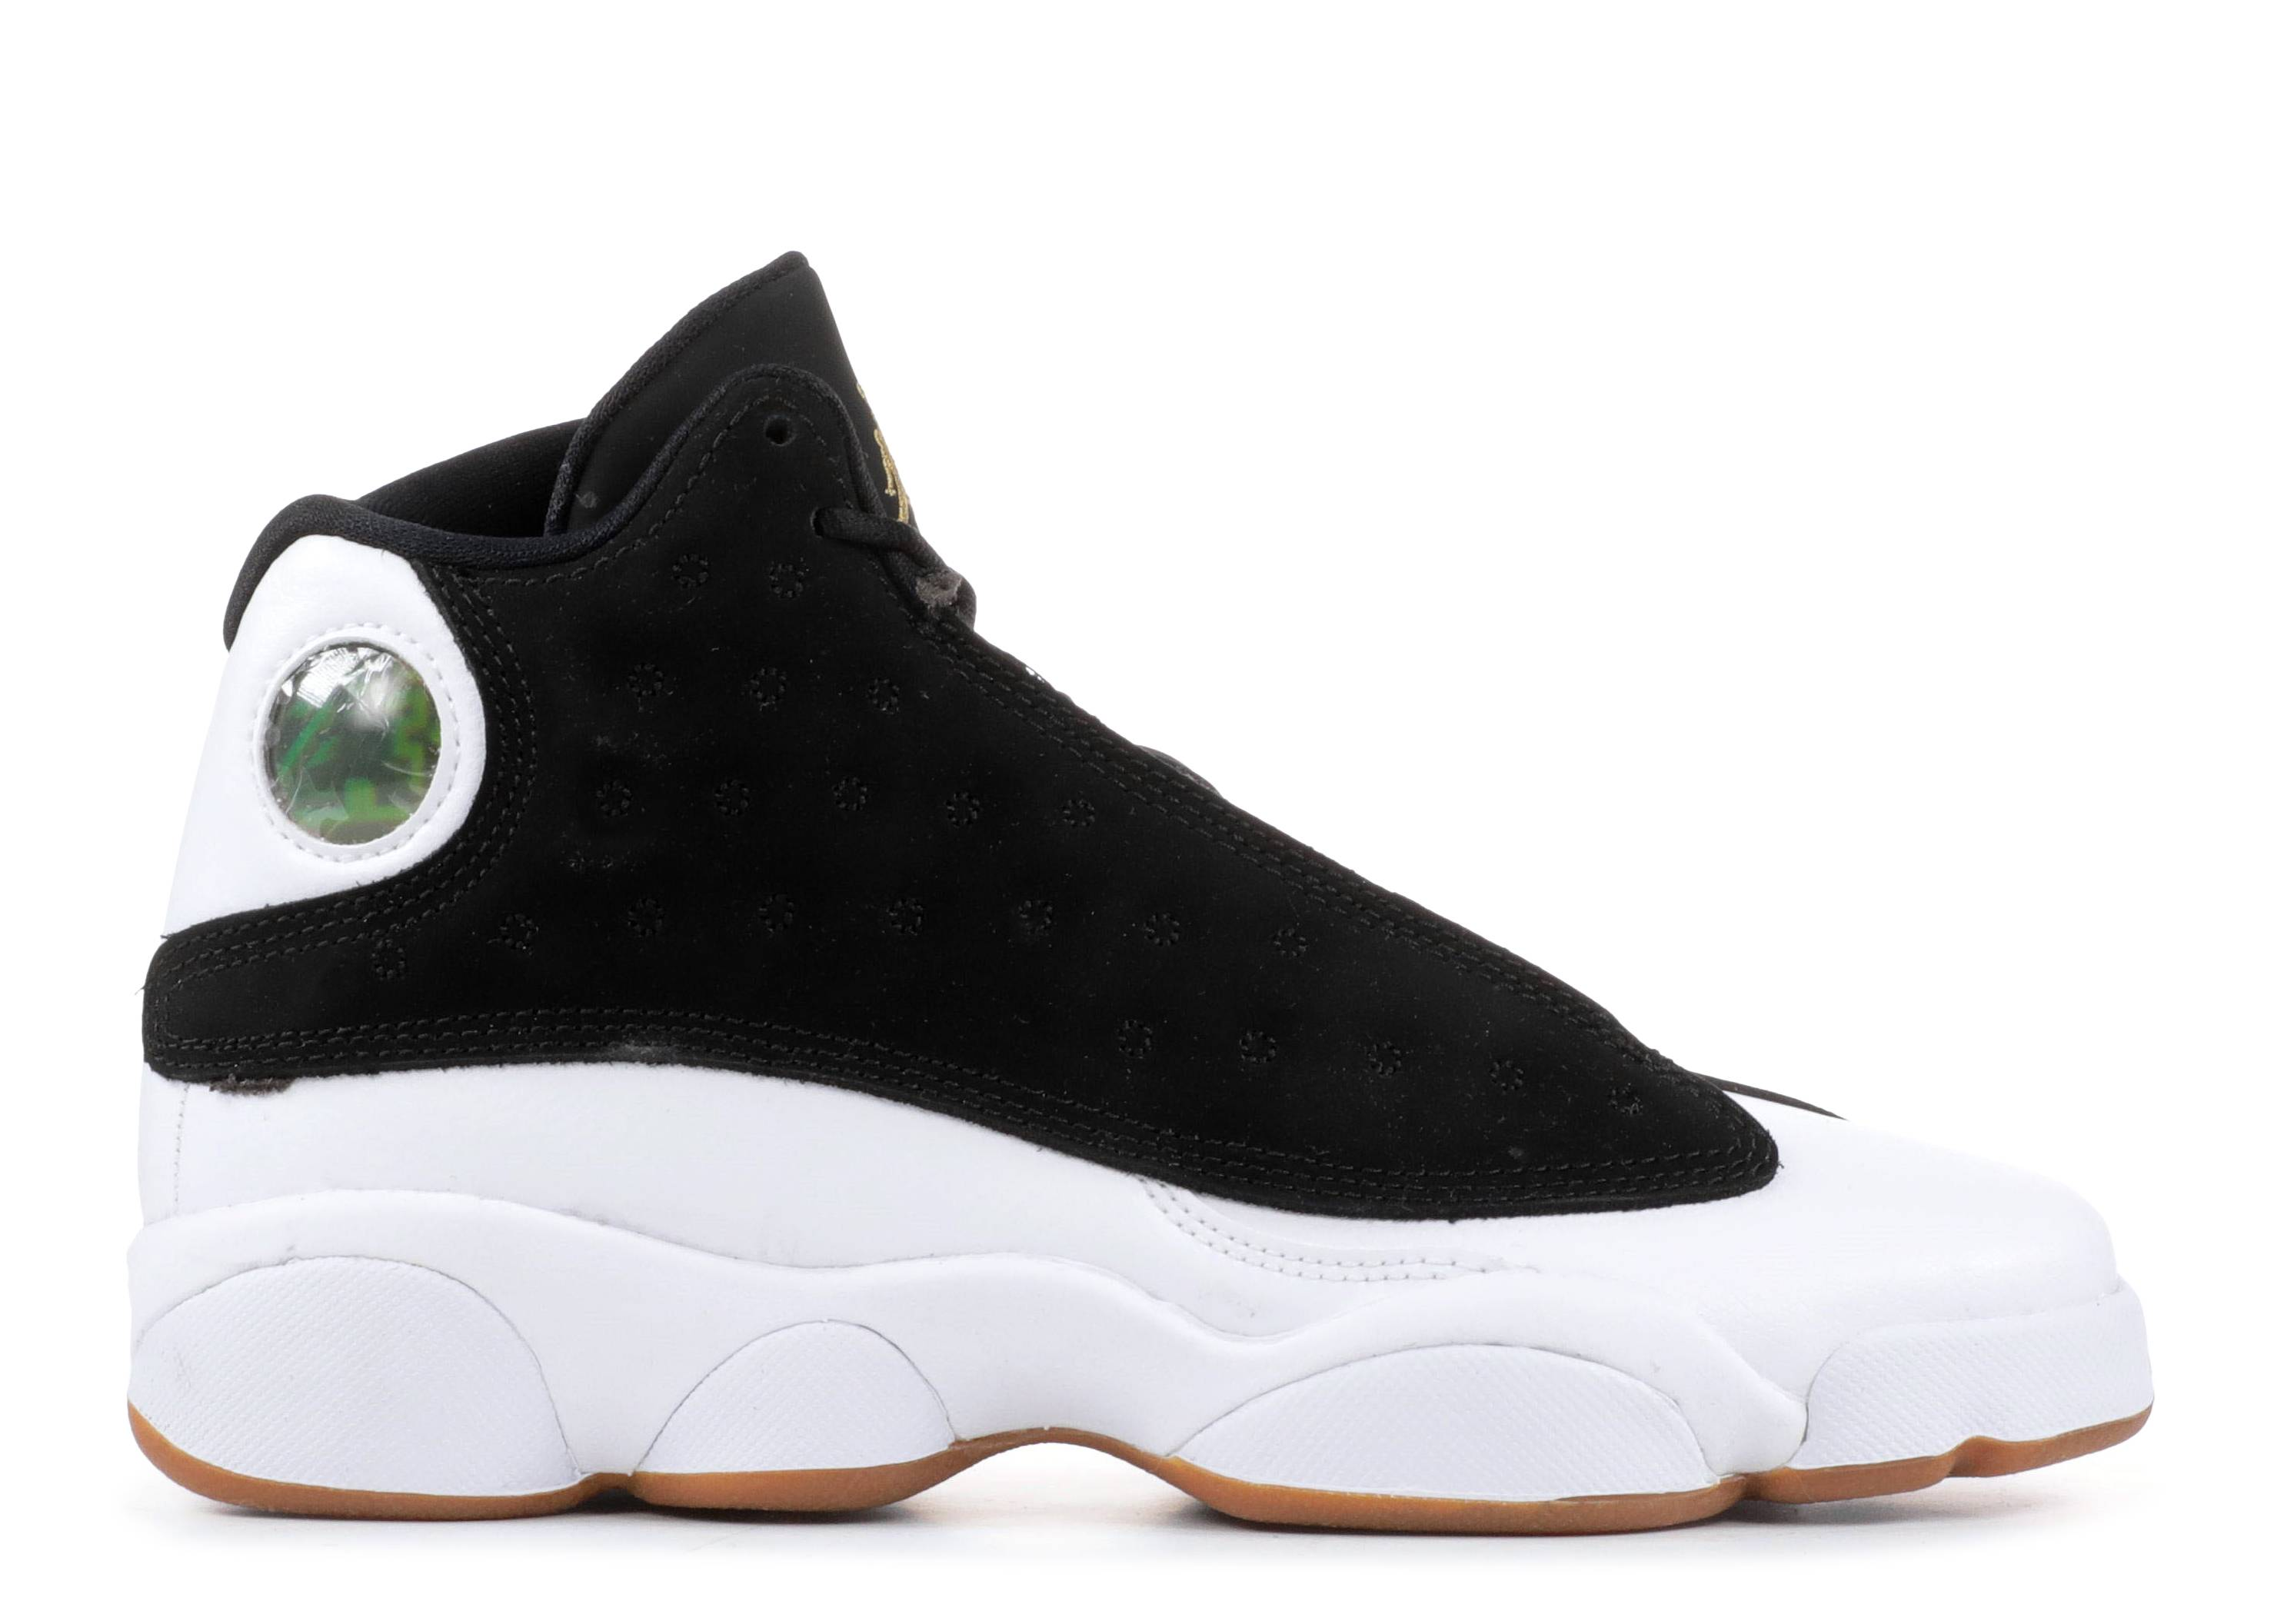 Air Jordan retro 13 gg